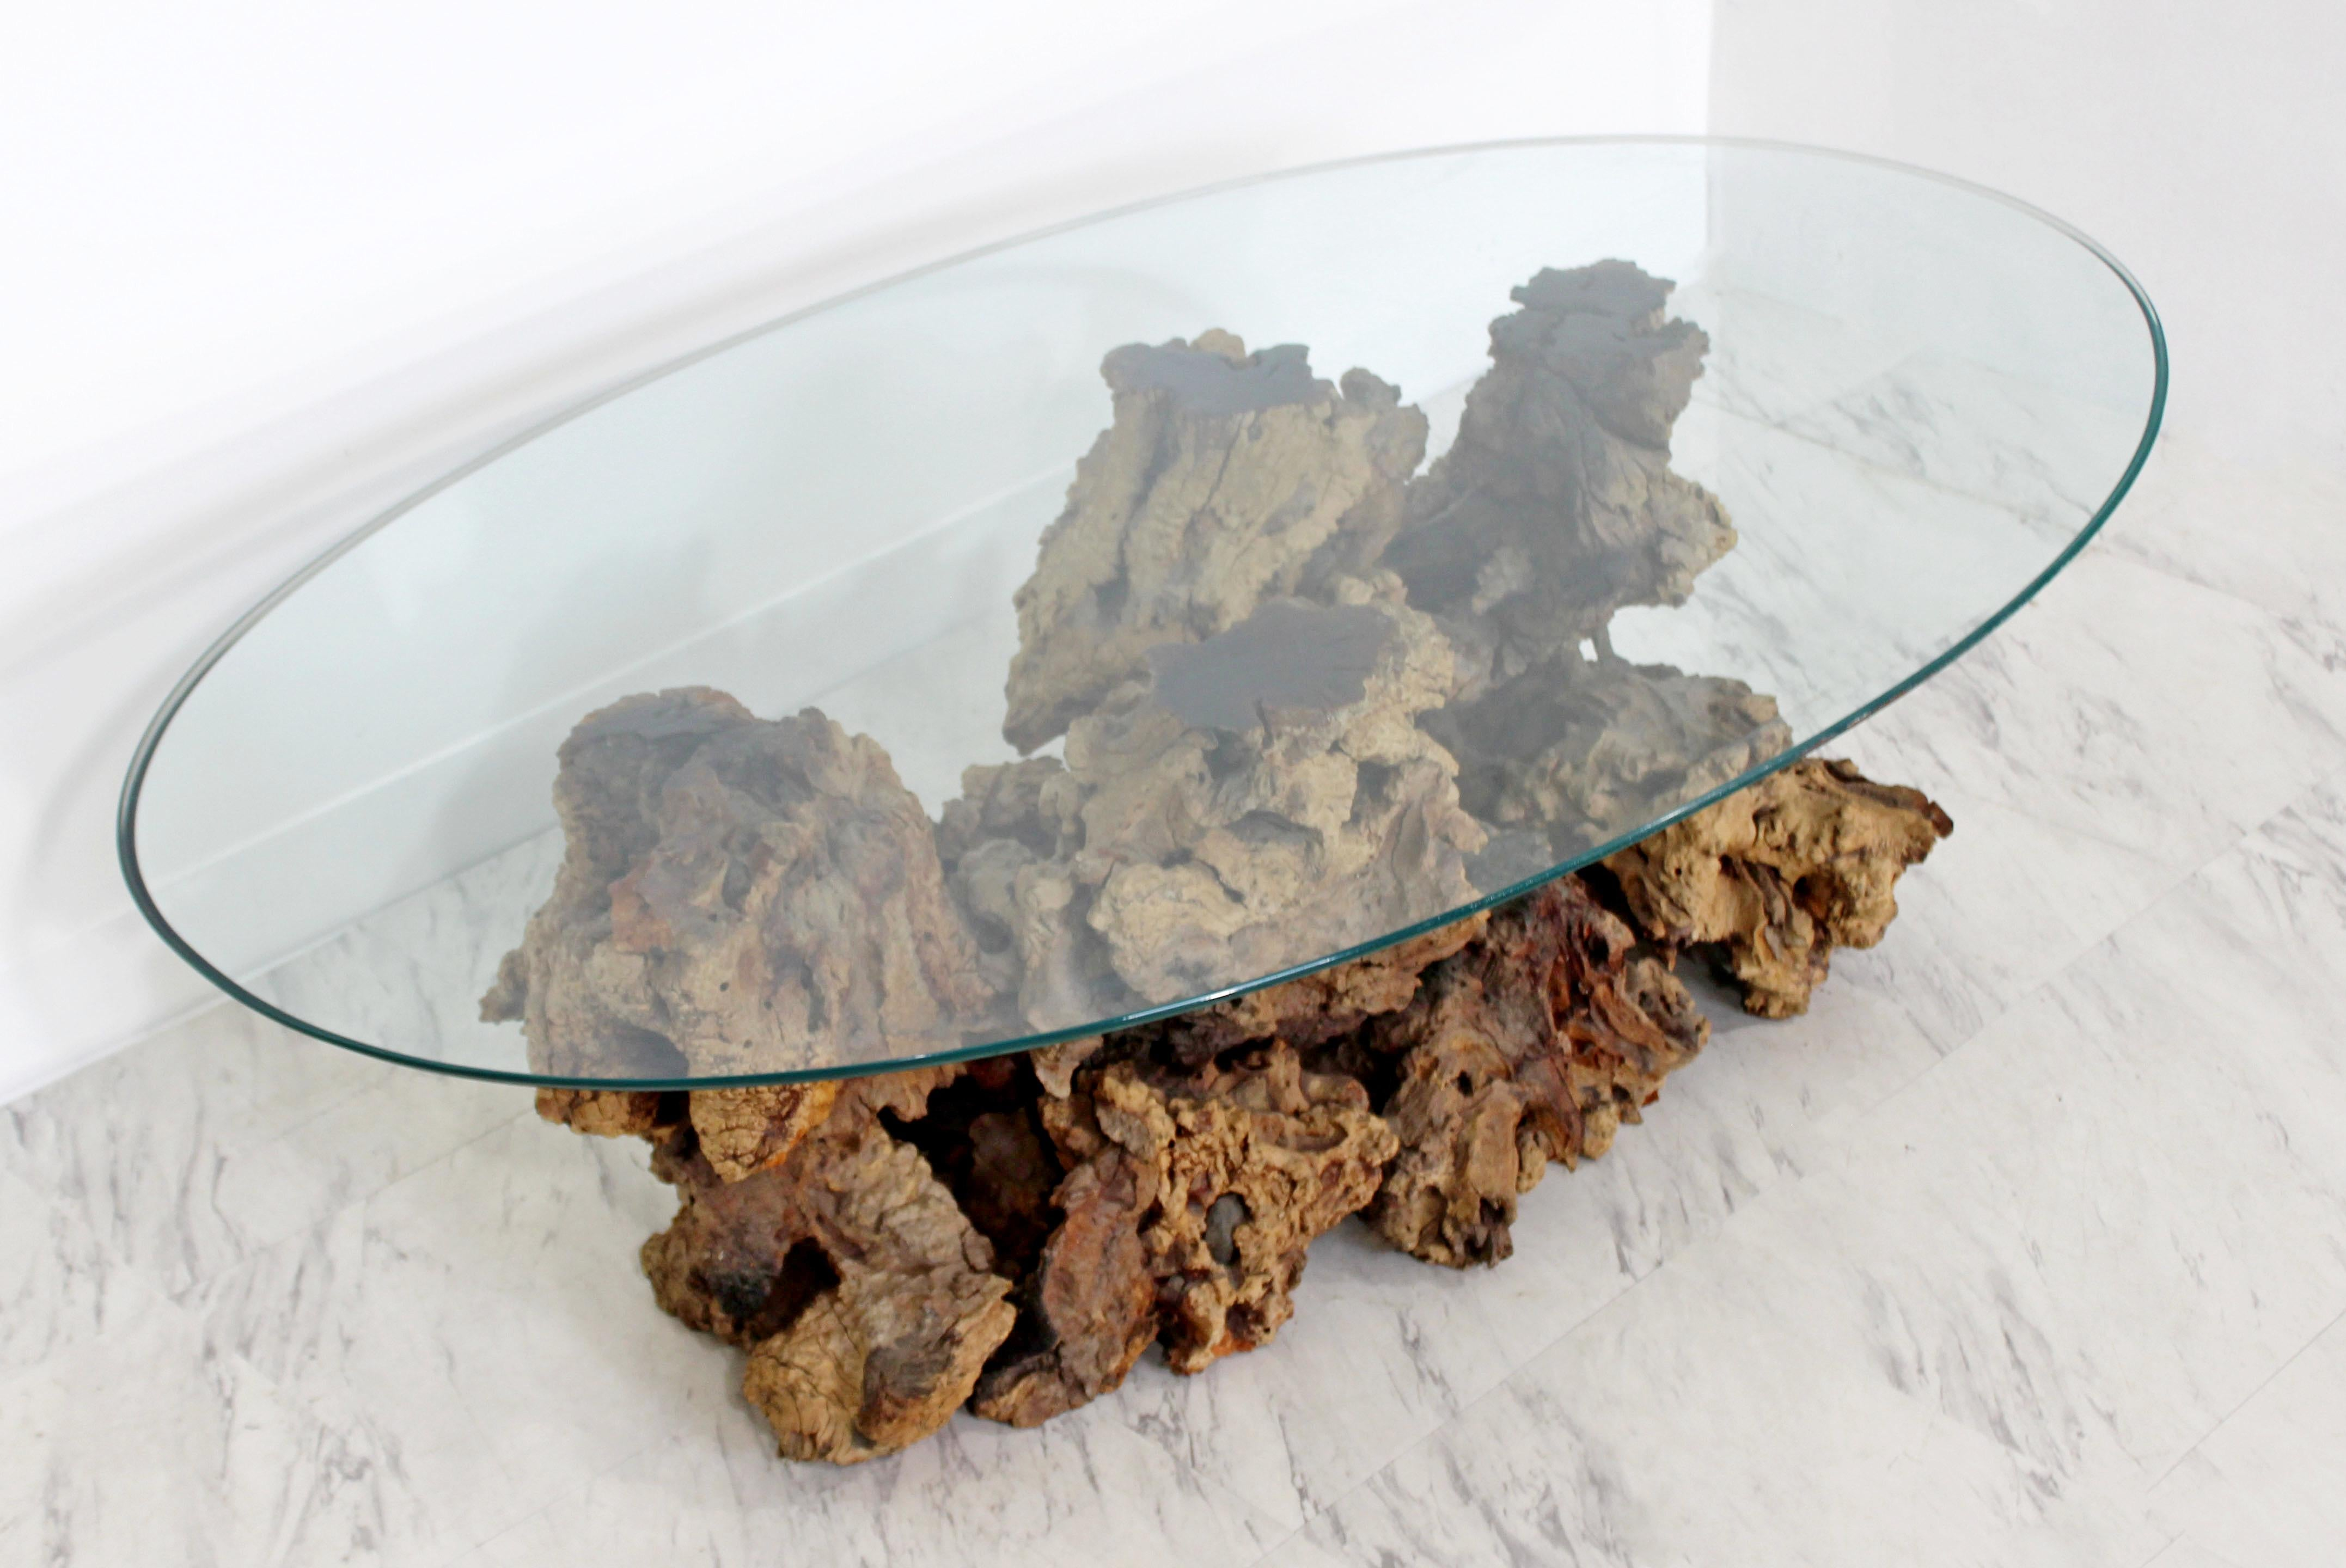 Antiques Mid Century Modern Sculptural Burl Wood Driftwood Tree Trunk Coffee Table 1960s